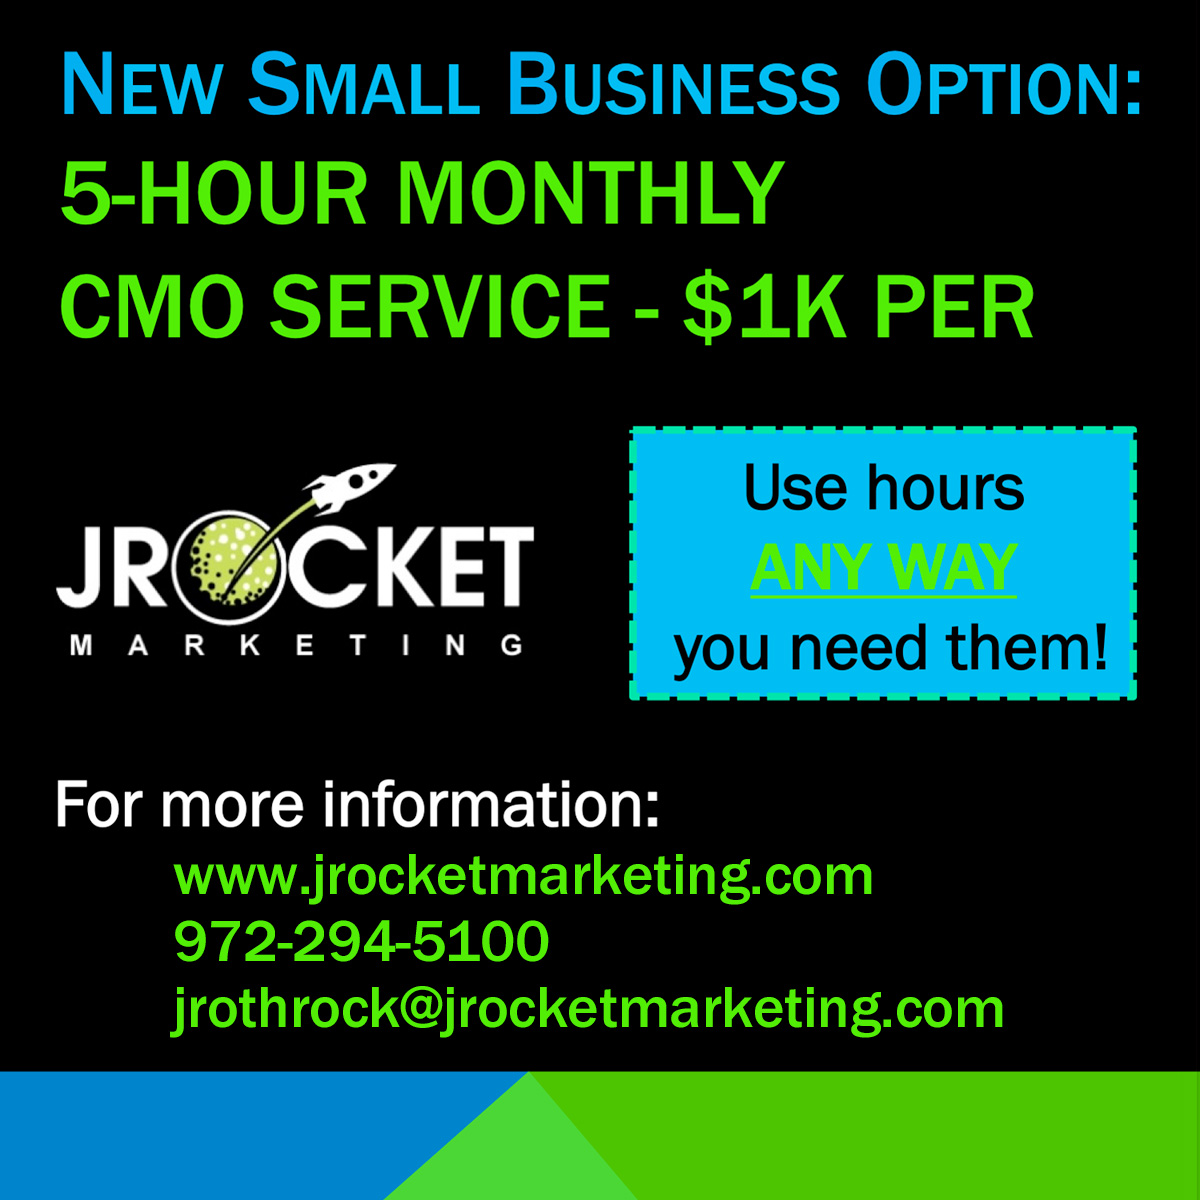 JRocket Marketing 5-Hour CMO Service for Small Businesses